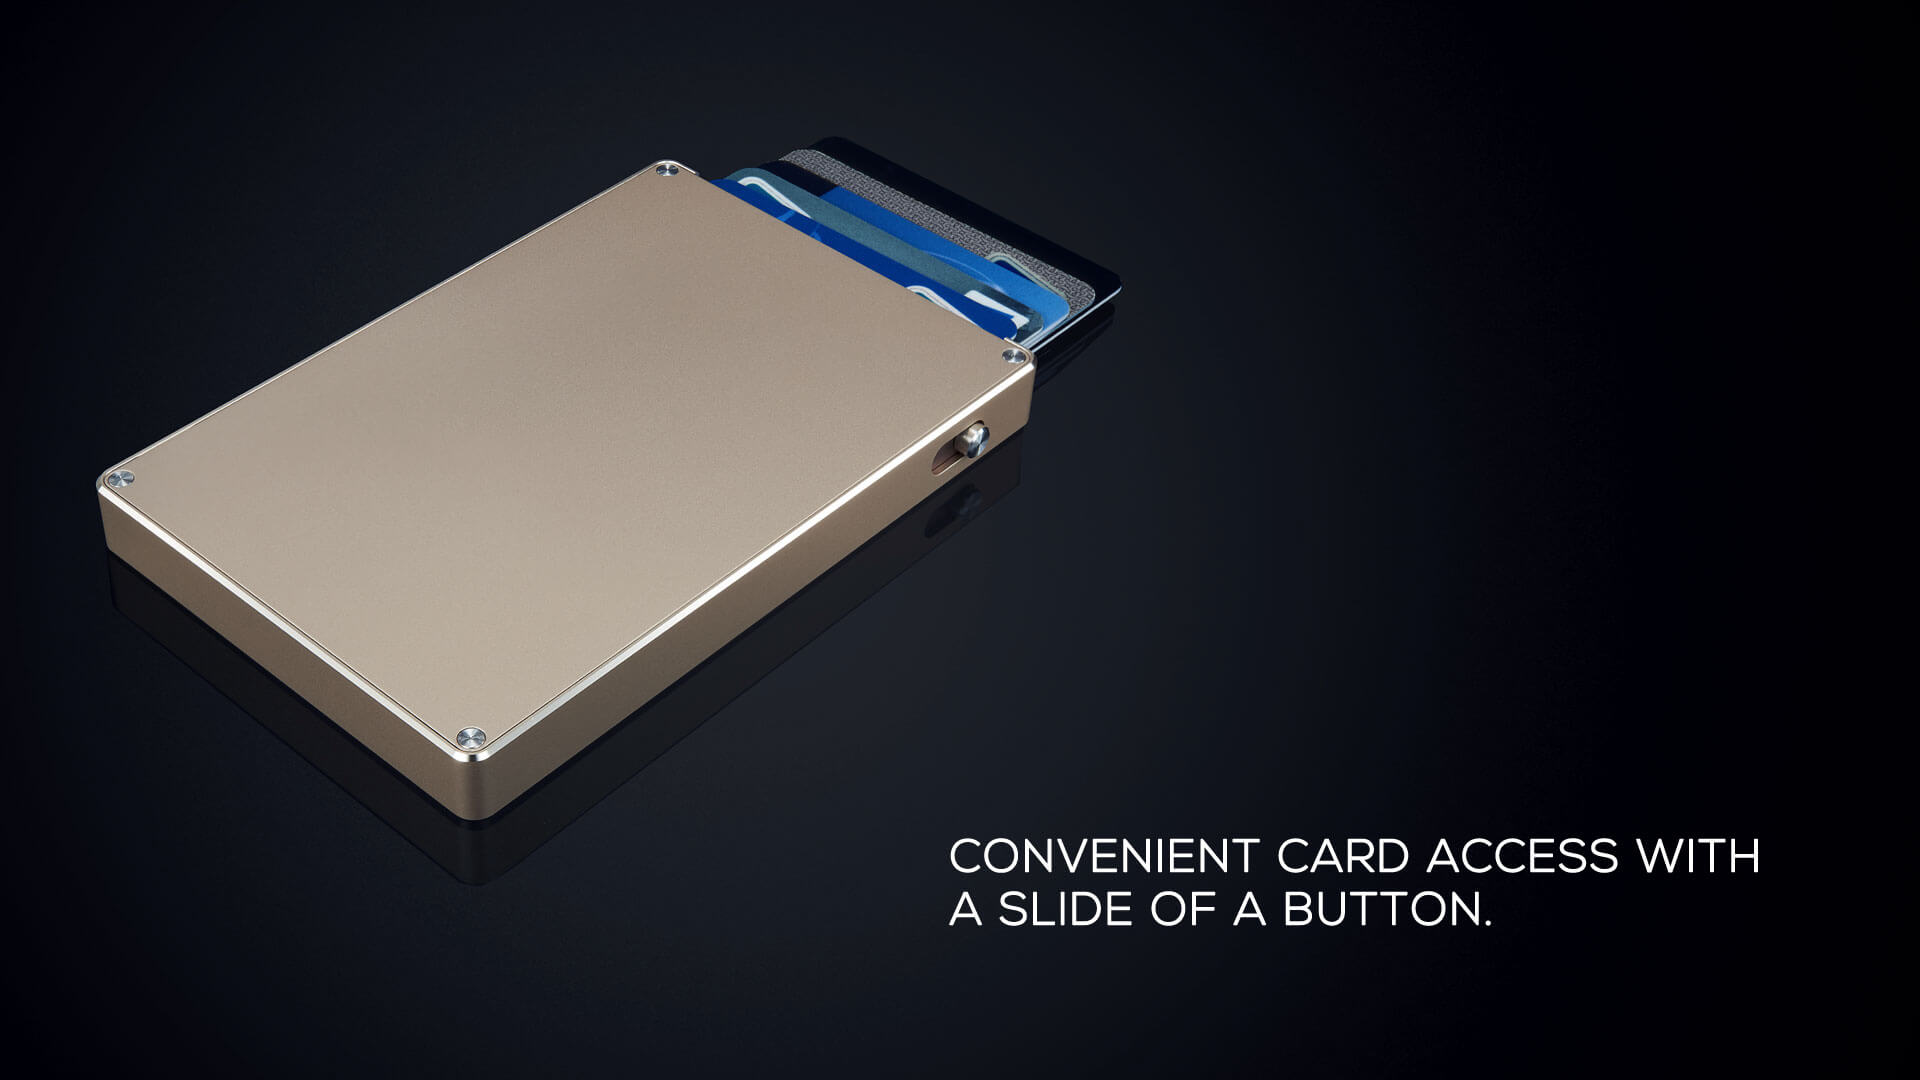 convenient card access with a slide of a button